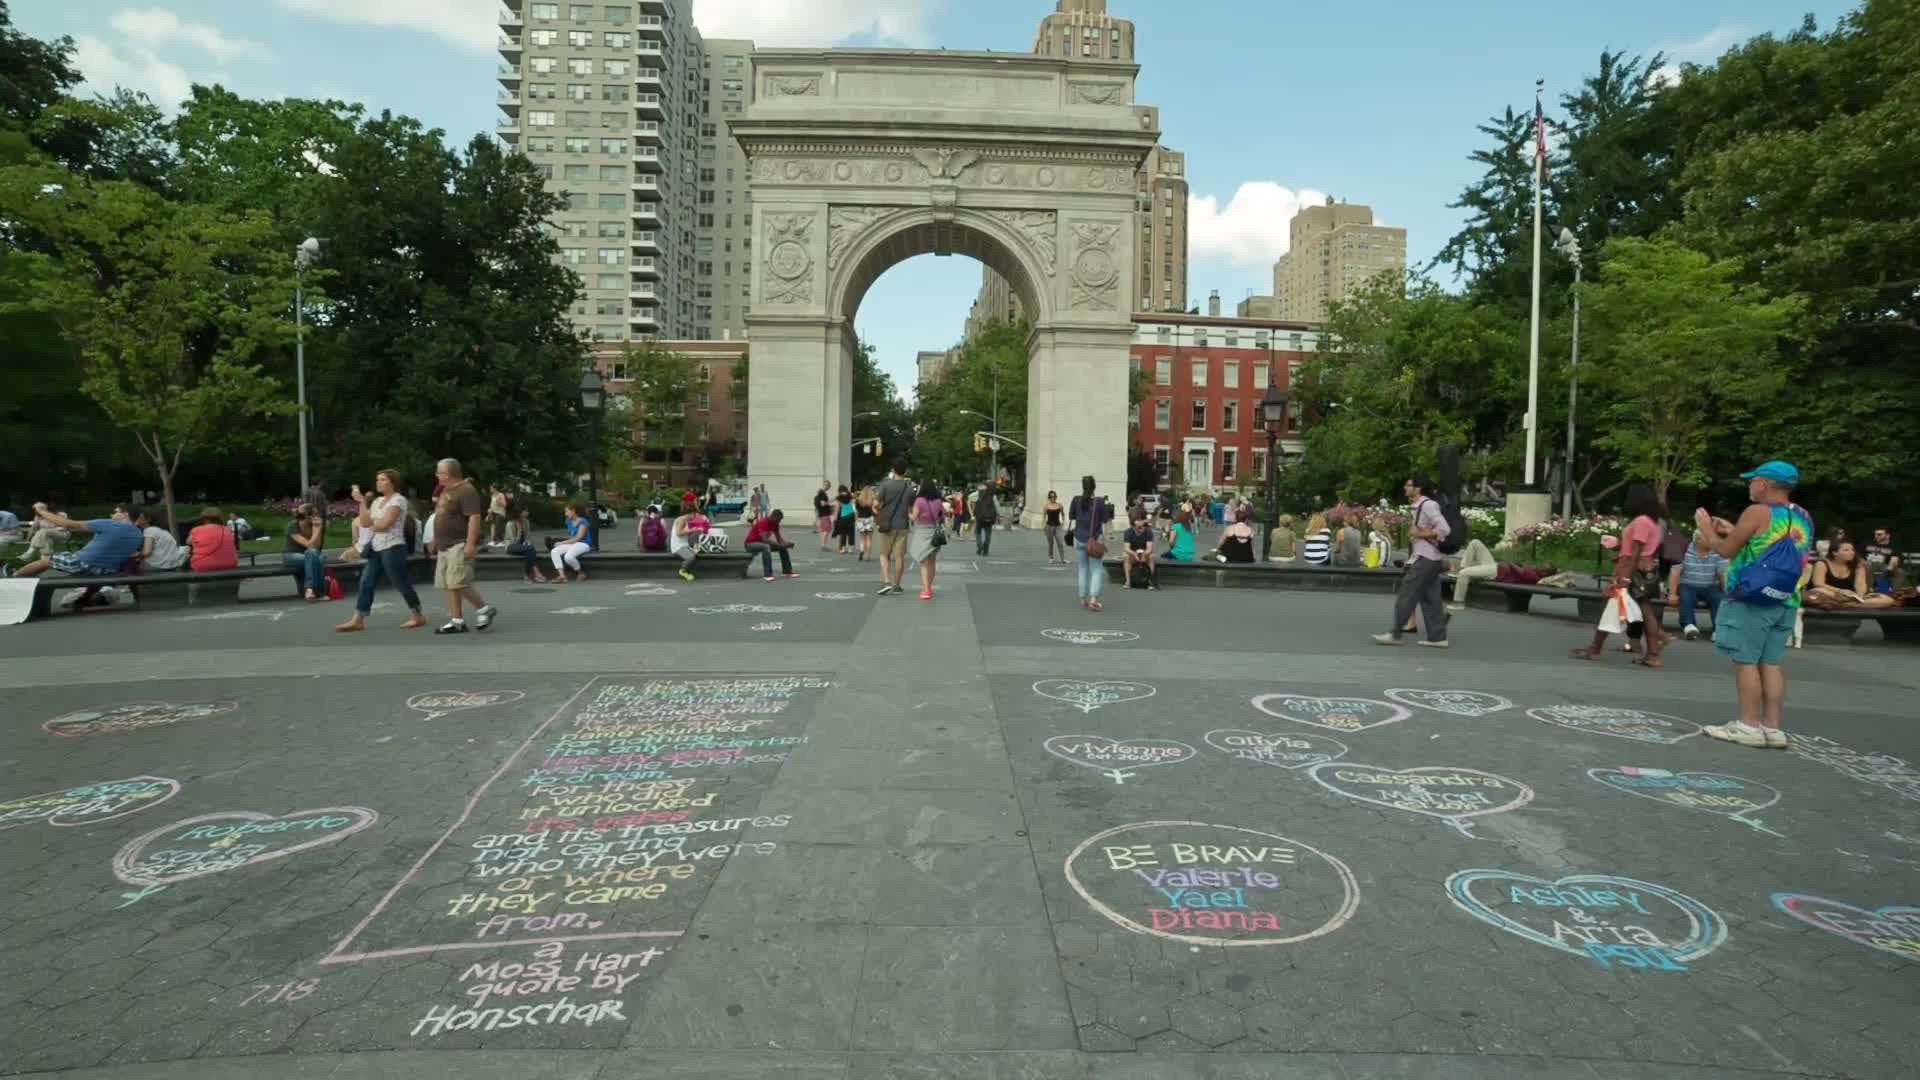 chalk art and writing on ground in Washington Square Park with arch and people on summer day in NYC